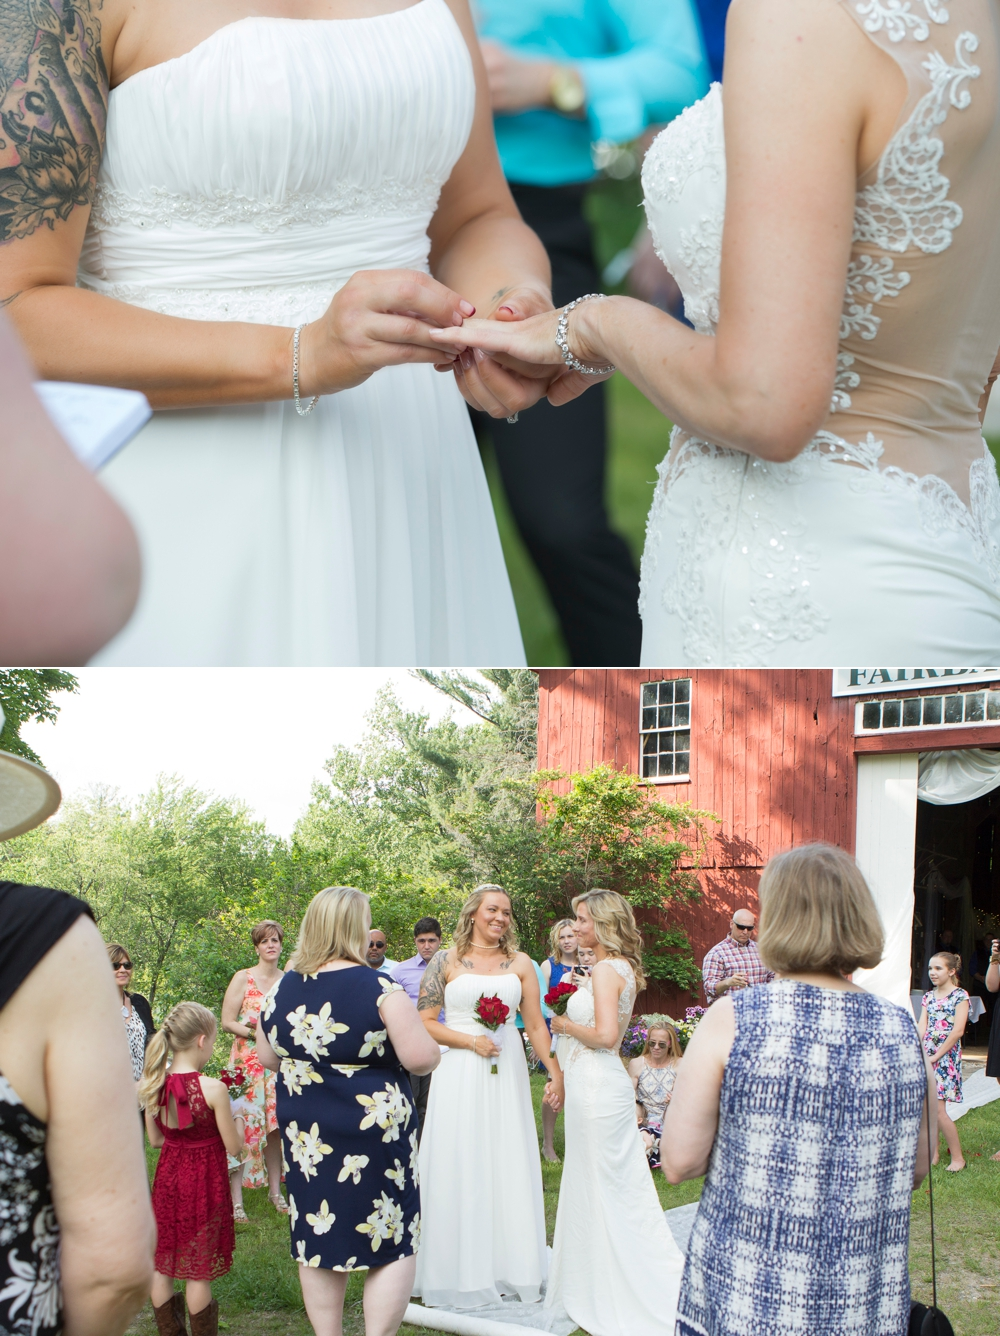 FairbanksFarm_Wedding_Jill&Lori_0012.jpg